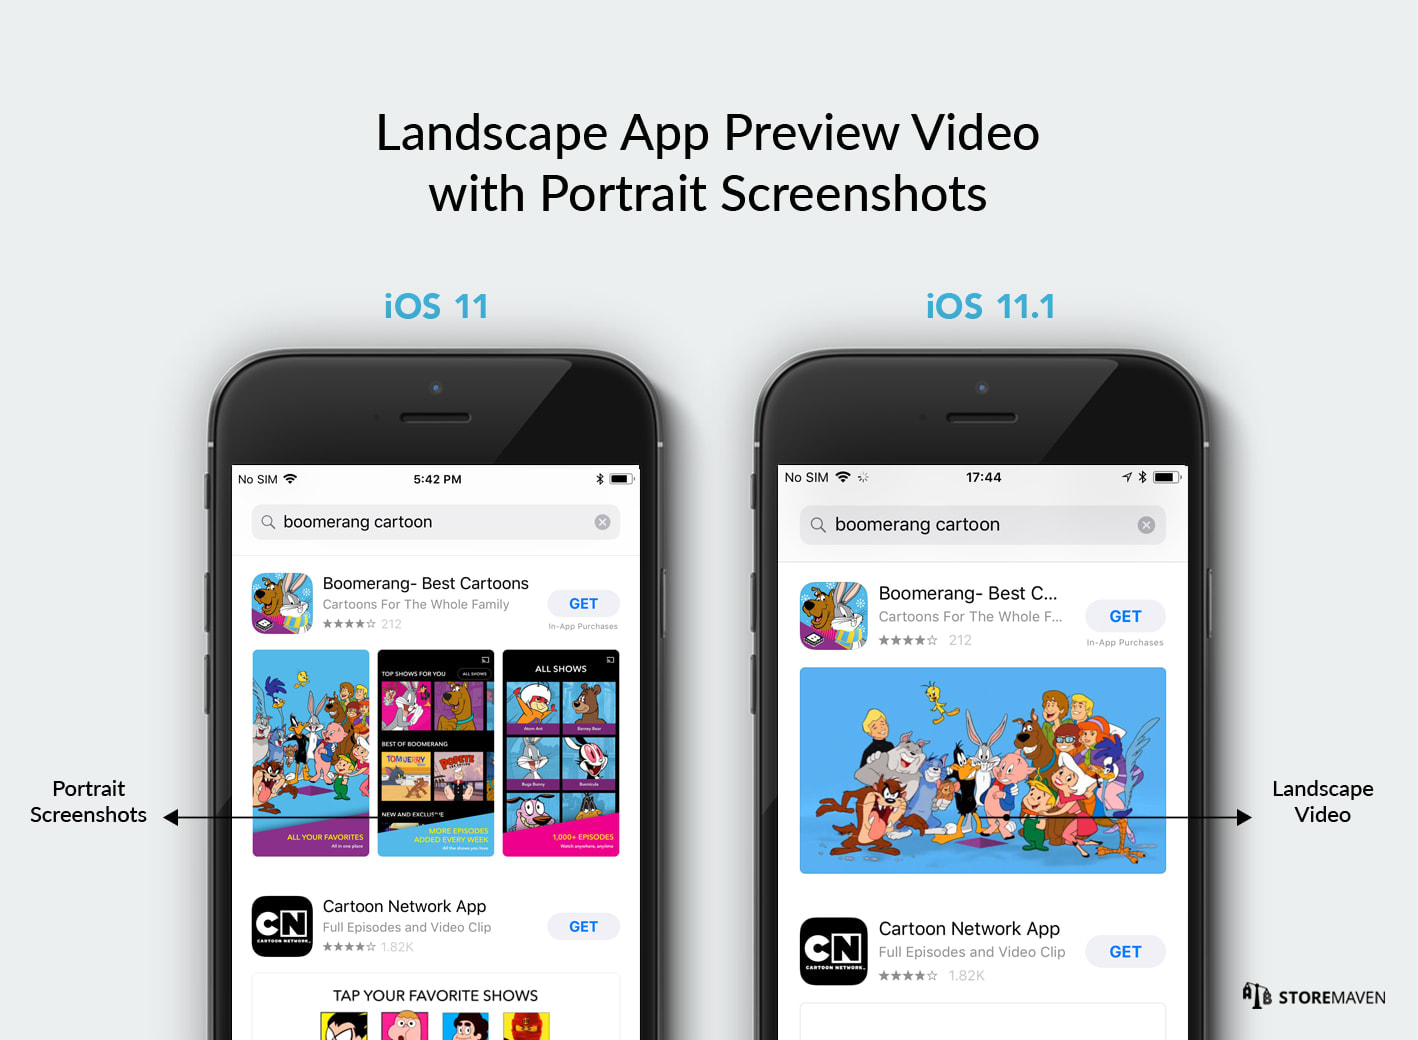 Landscape App Preview Video with Portrait Screenshots